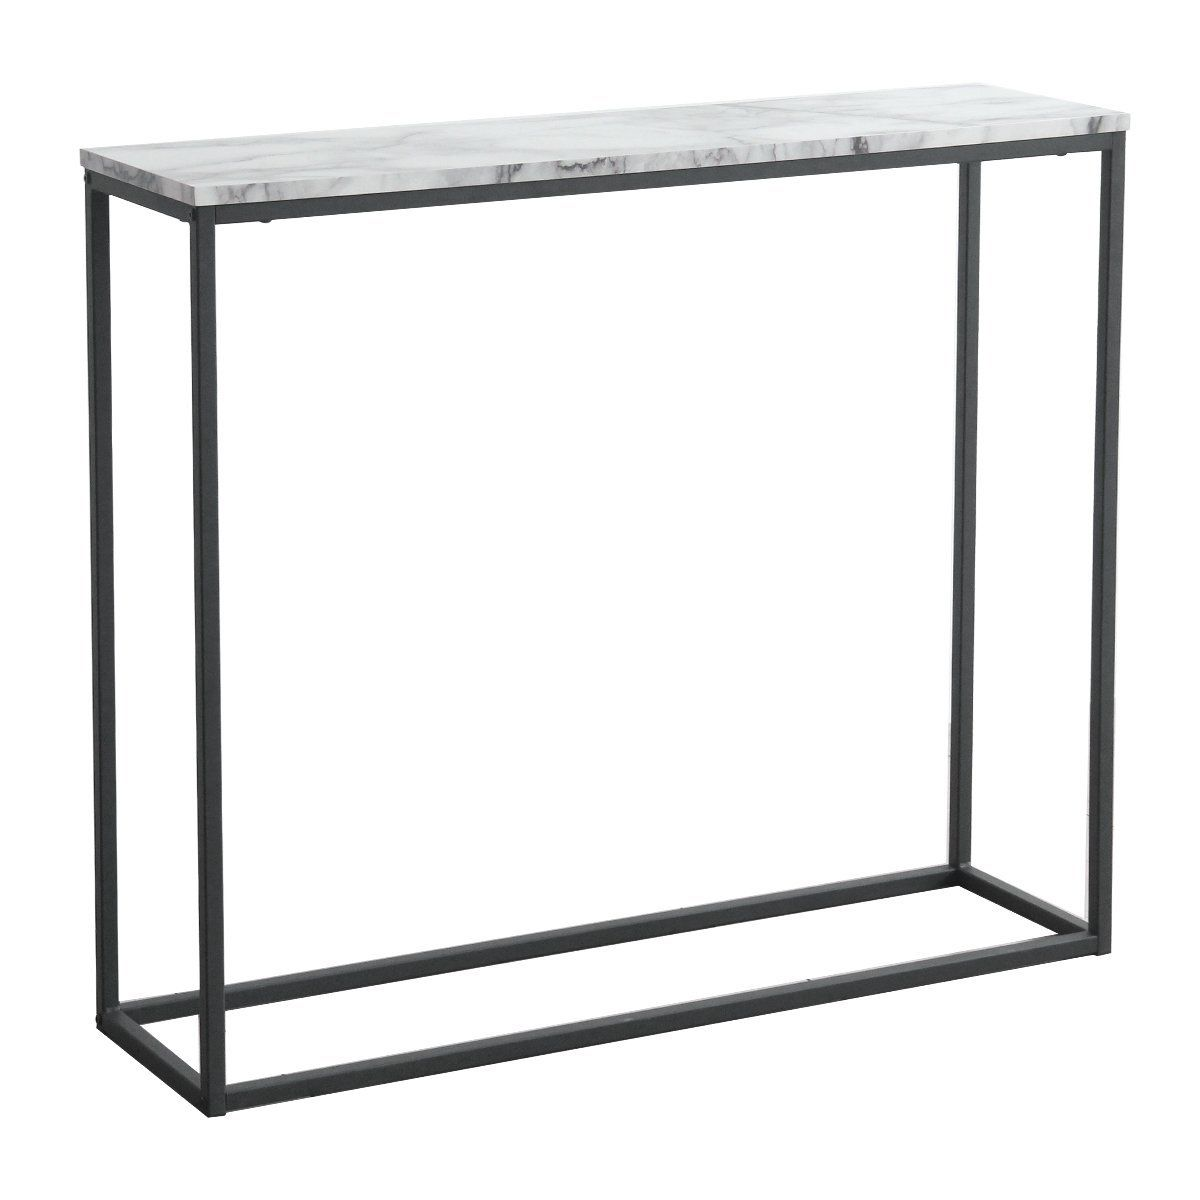 Amazon Com Tilly Lin Modern Accent Faux Marble Console Table Black Metal Frame For Hallway Entry With Images Marble Console Table Entrance Hall Furniture Hall Furniture